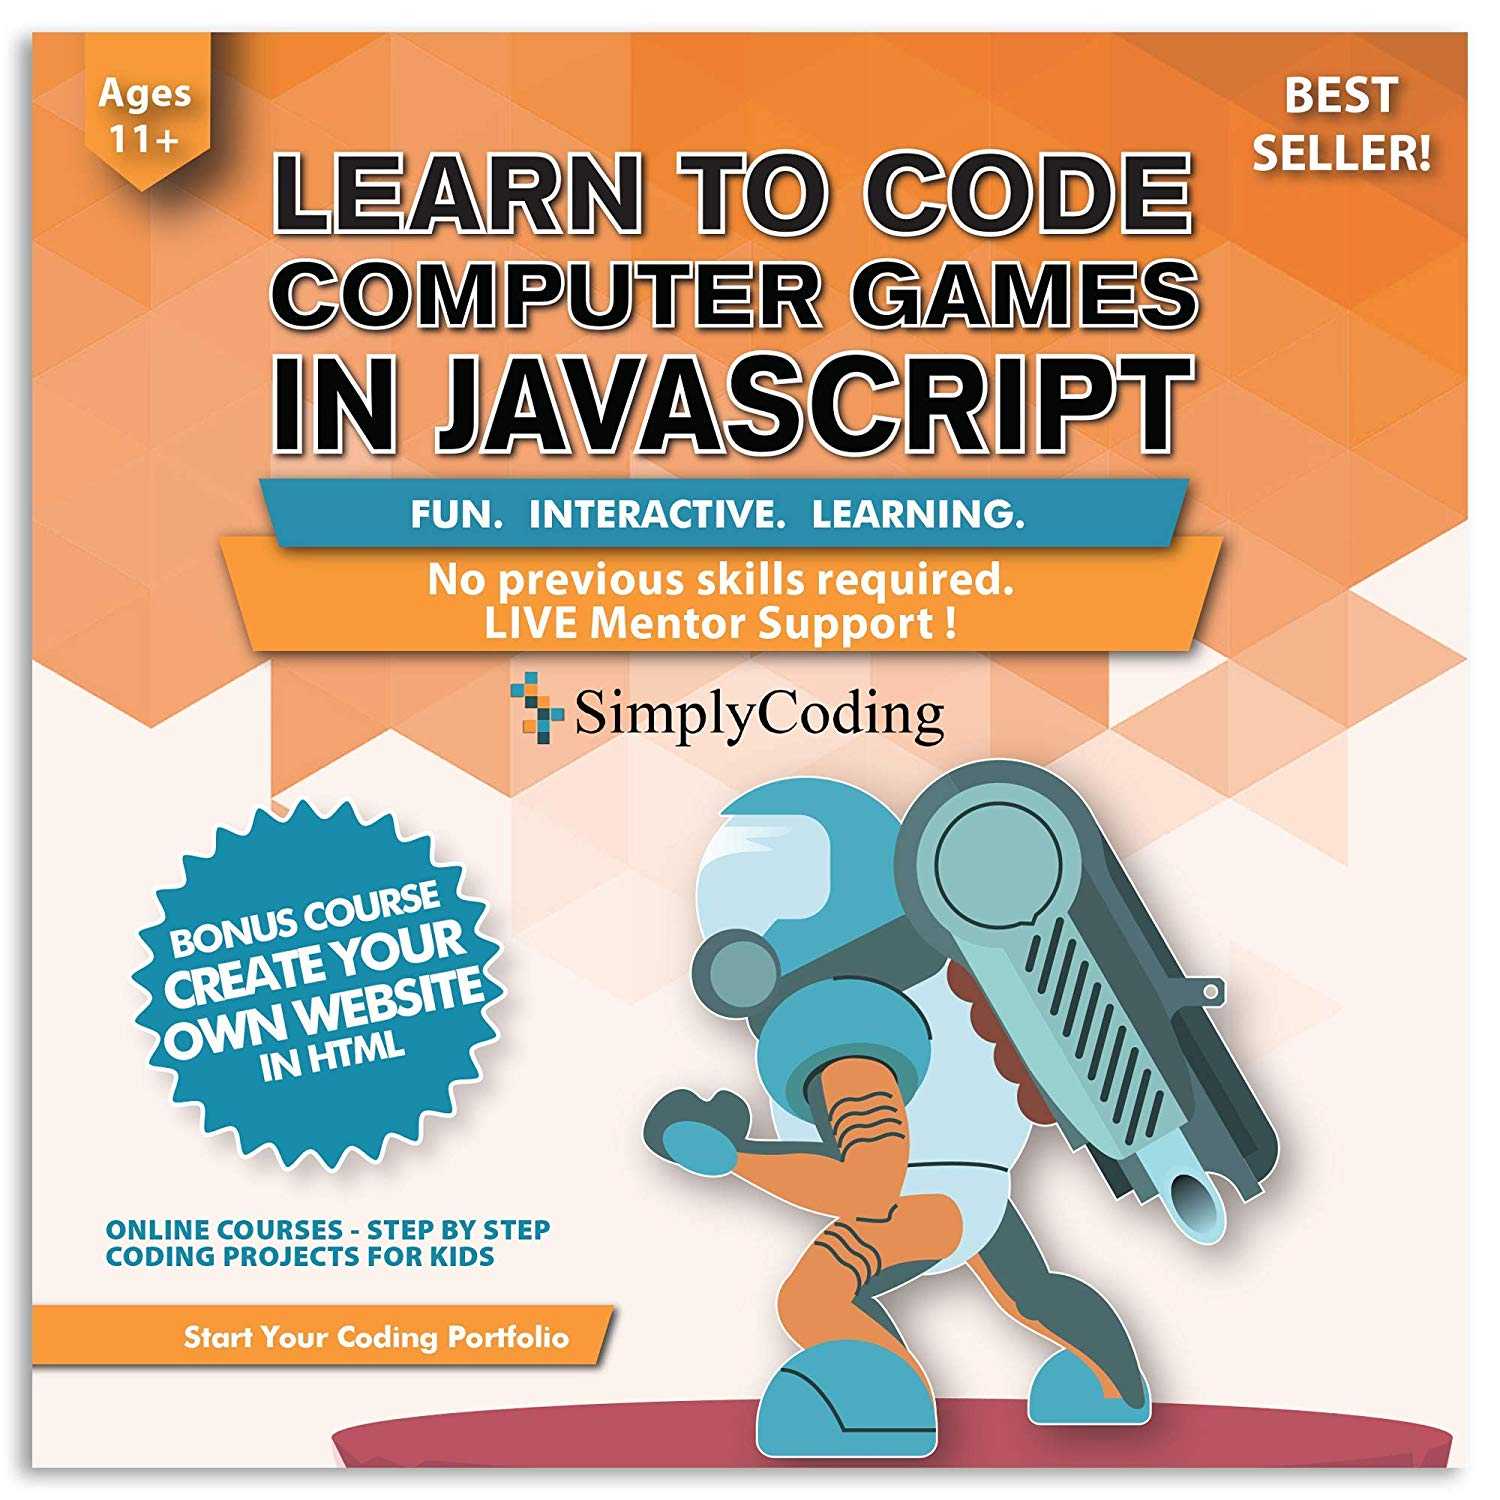 Simple Coding JavaScript Game Design Course Receives Video Review from Impressed User